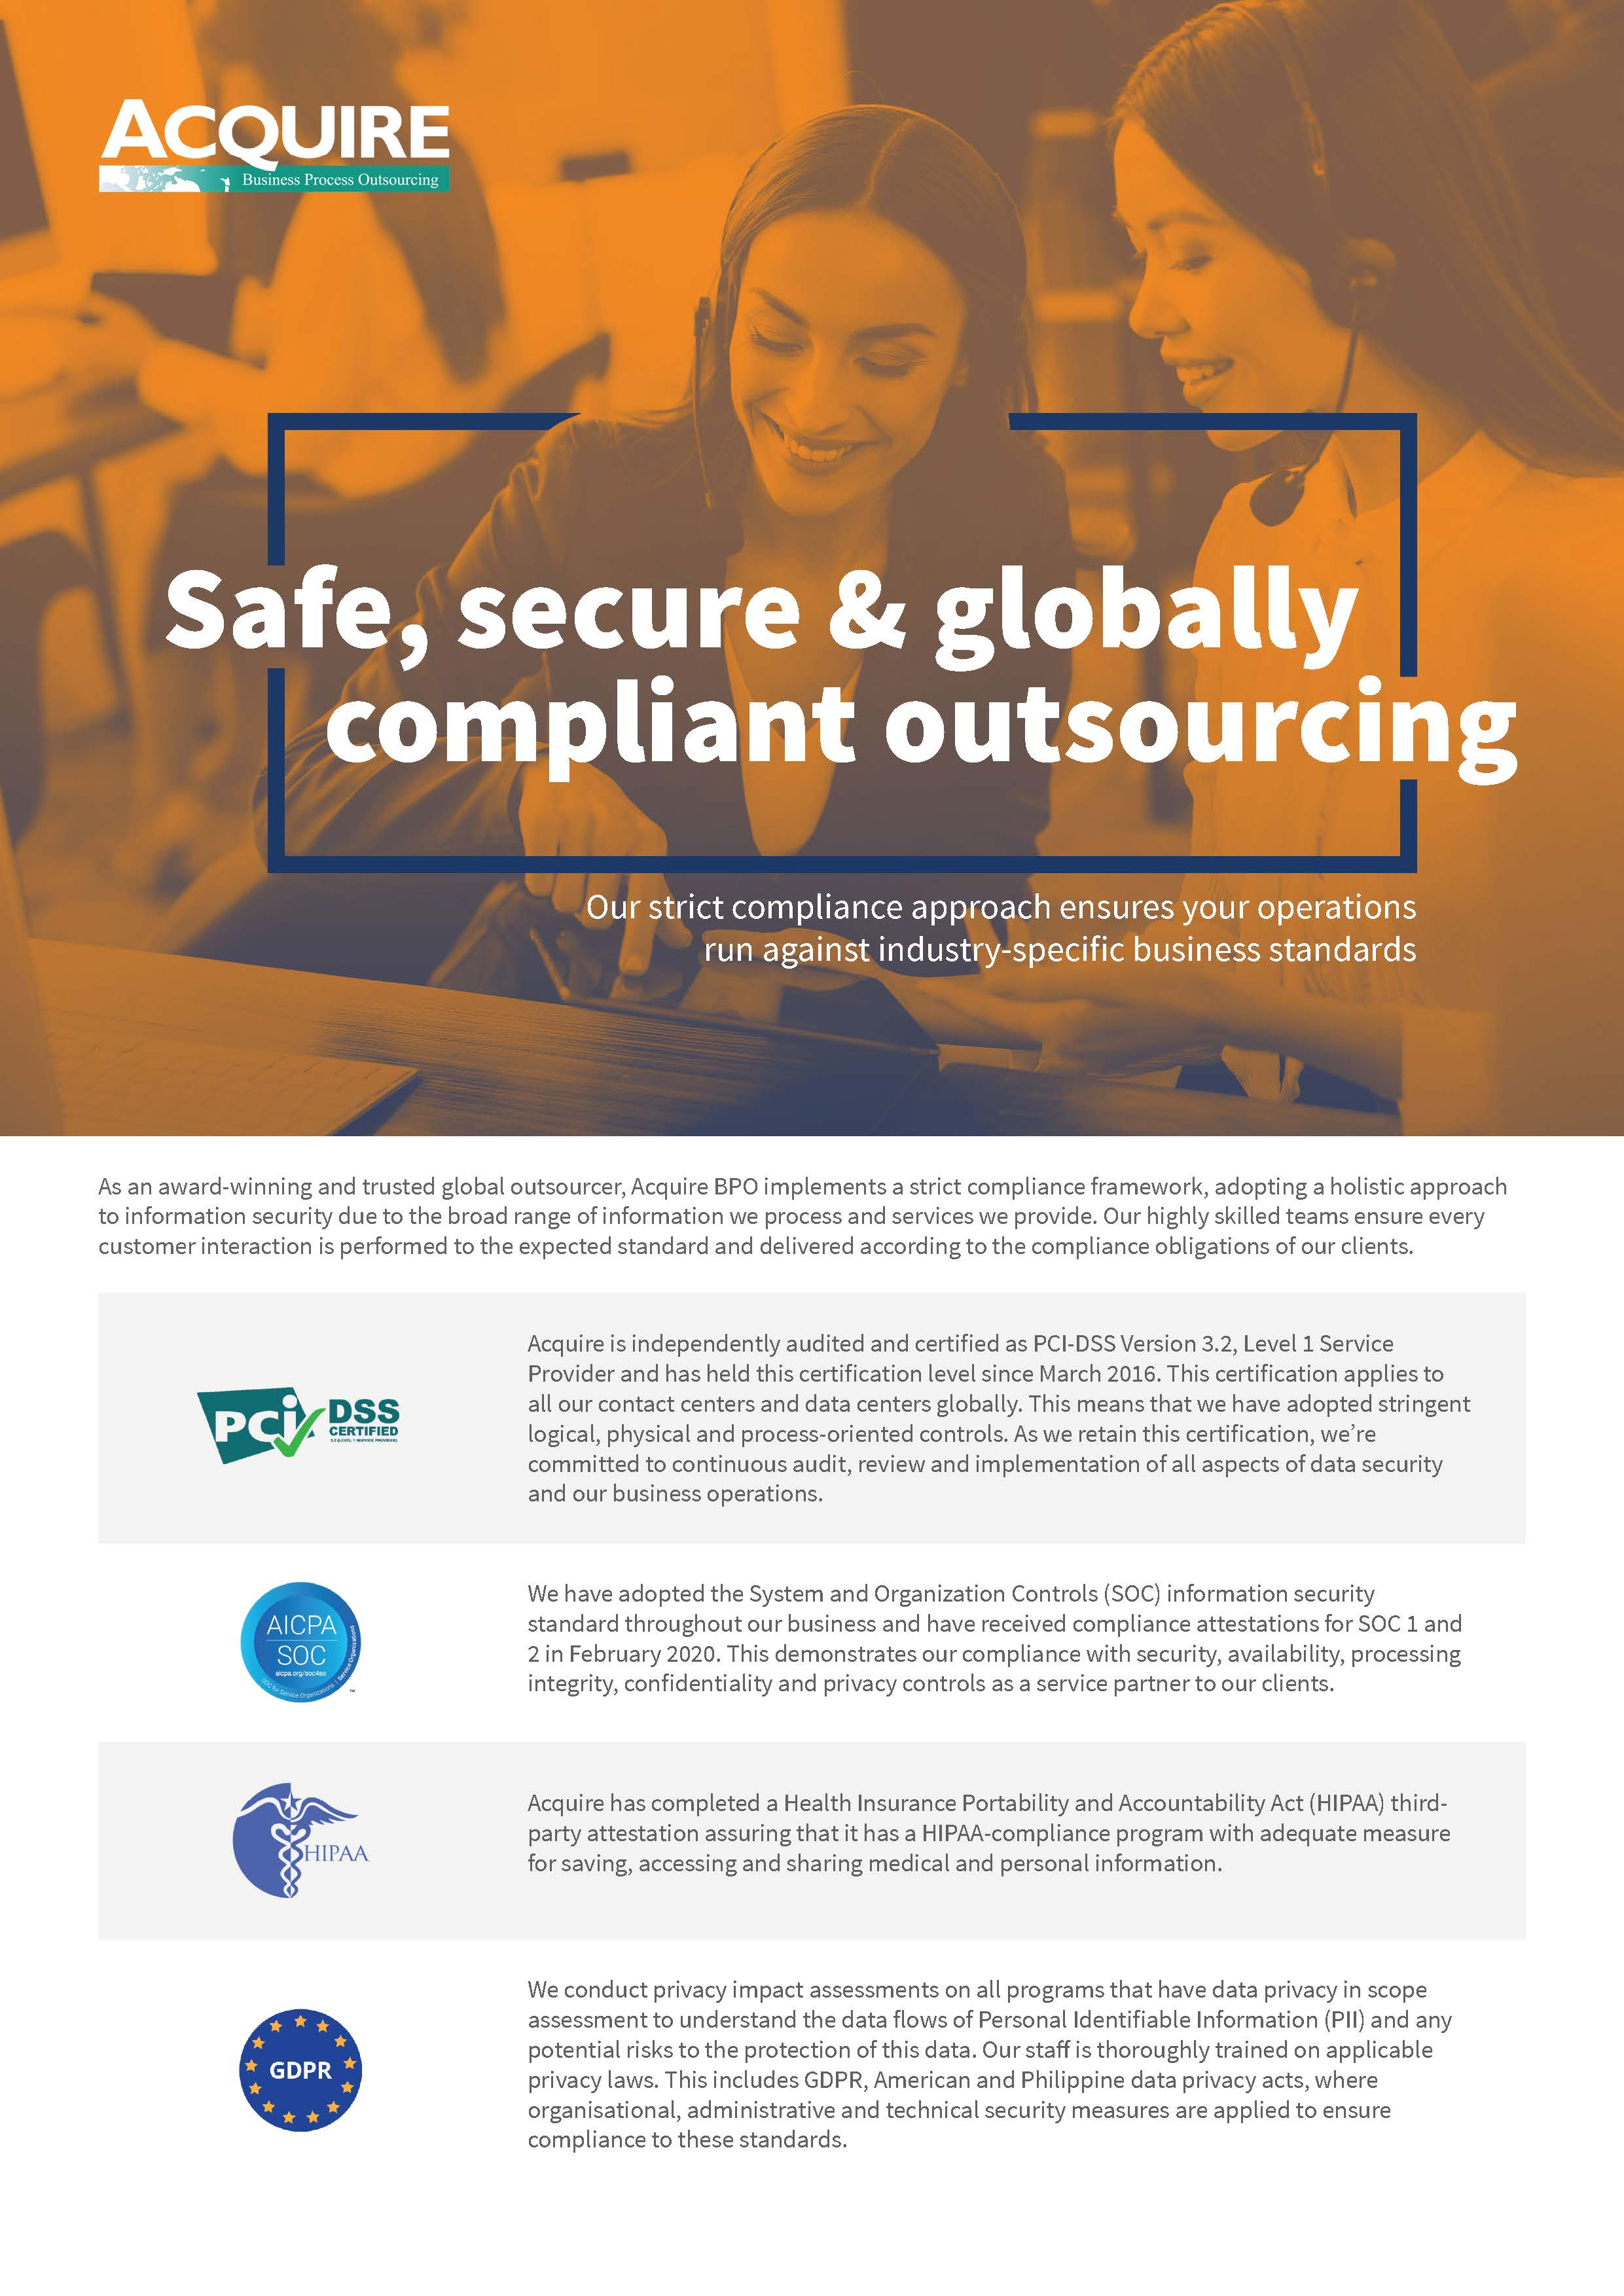 Safe secure & globally compliant outsourcing